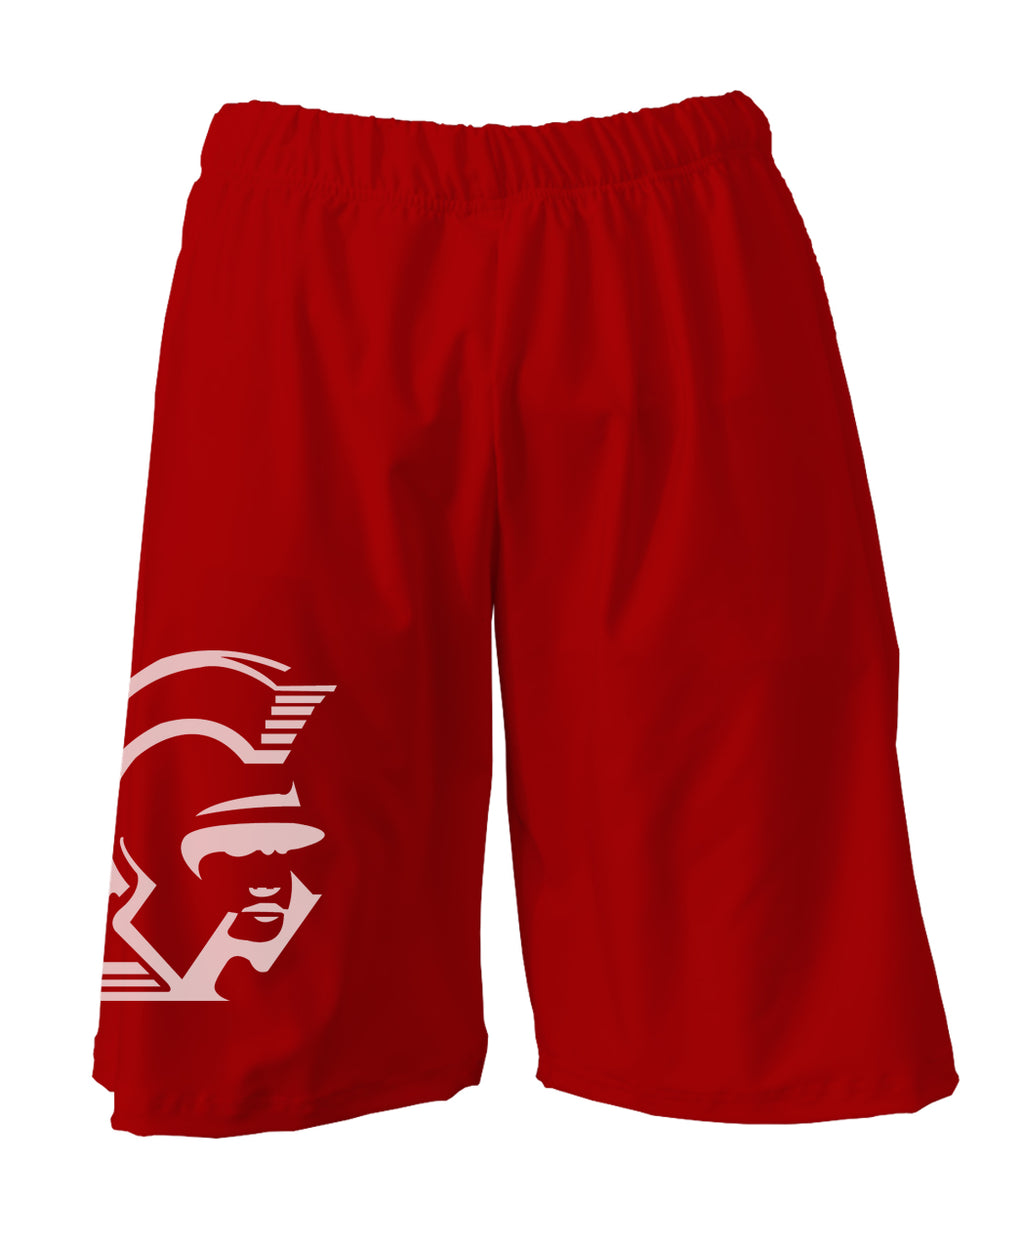 MG Center Grove Ath Fit Shorts